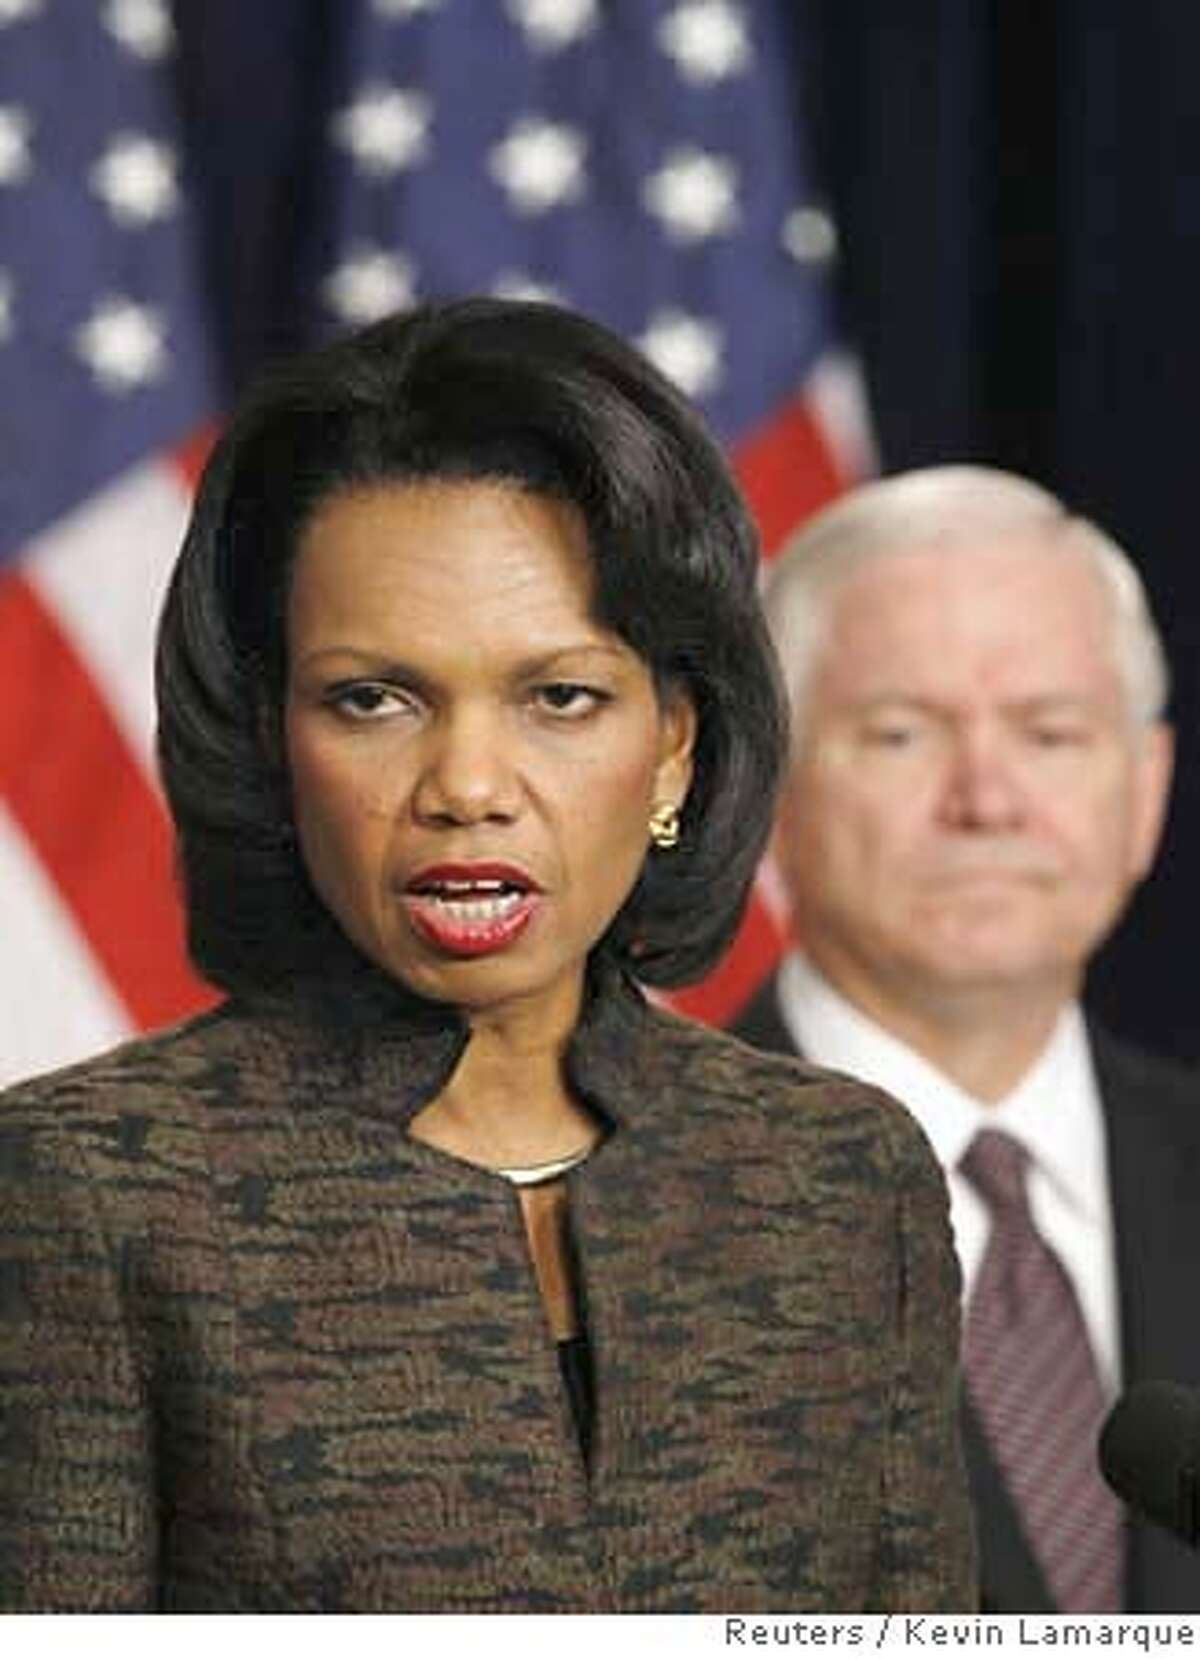 U.S. Secretary of State Condoleezza Rice (L) speaks to reporters about Iraq as Secretary of Defense Robert Gates watches at the Eisenhower Office Buildings in Washington January 11, 2007. REUTERS/Kevin Lamarque (UNITED STATES) 0